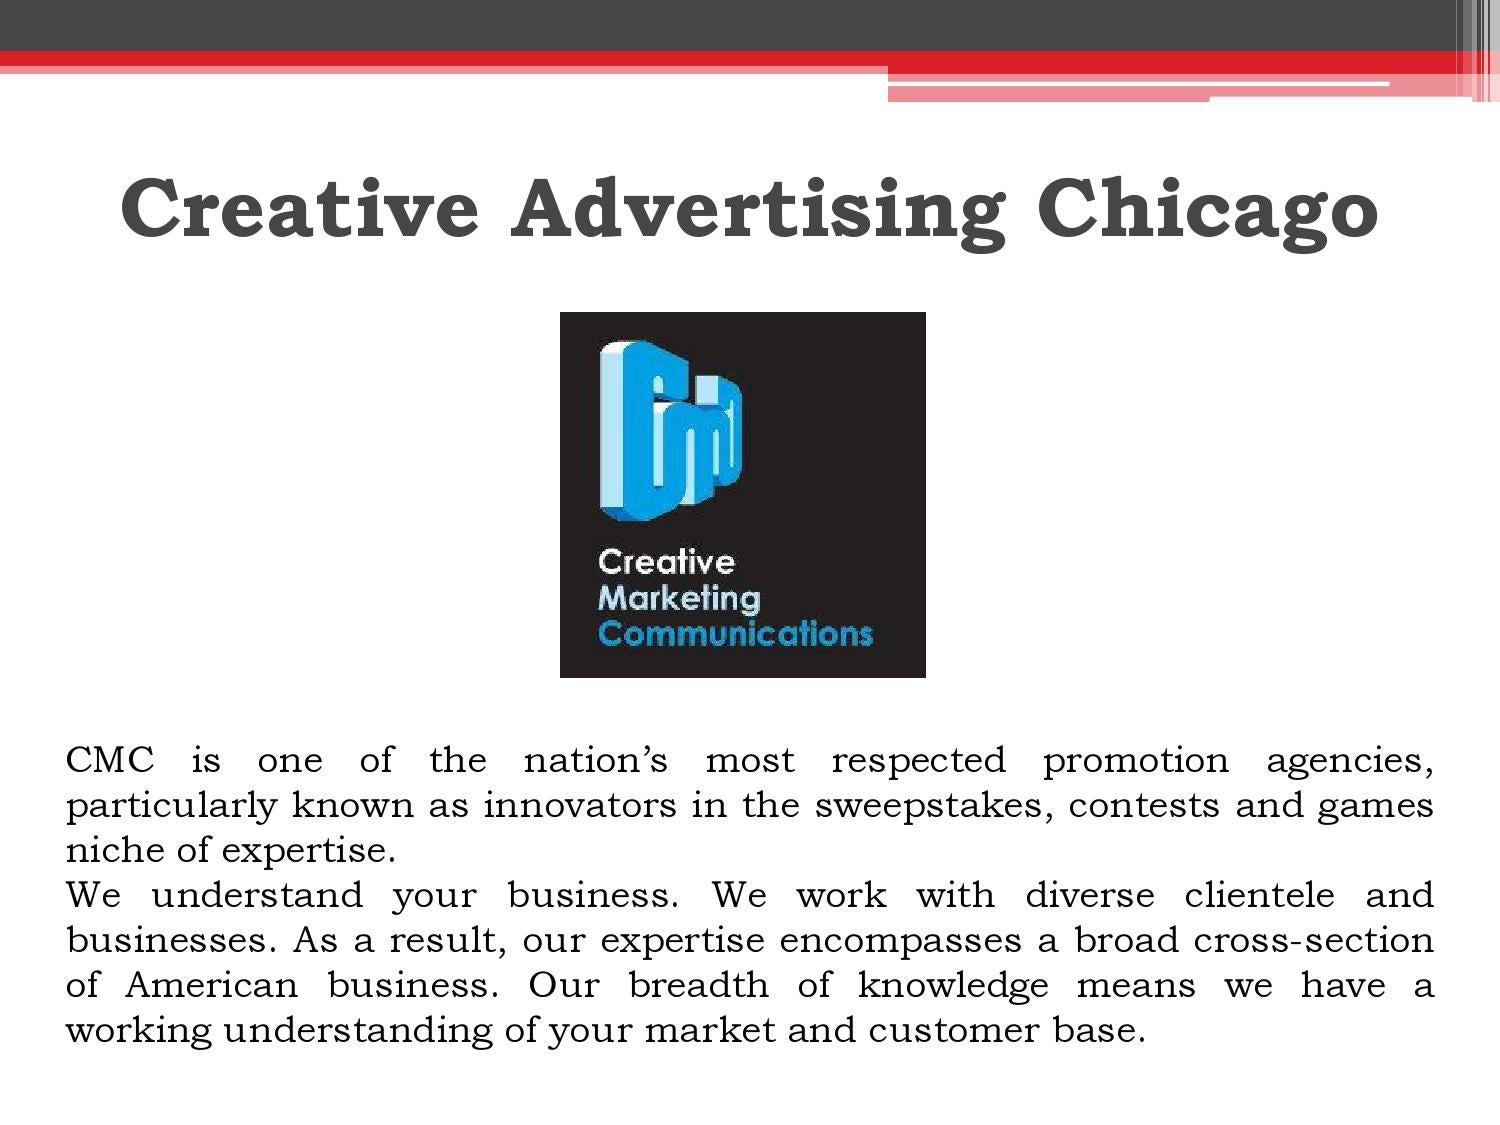 Creative advertising chicago by cmc2win - issuu